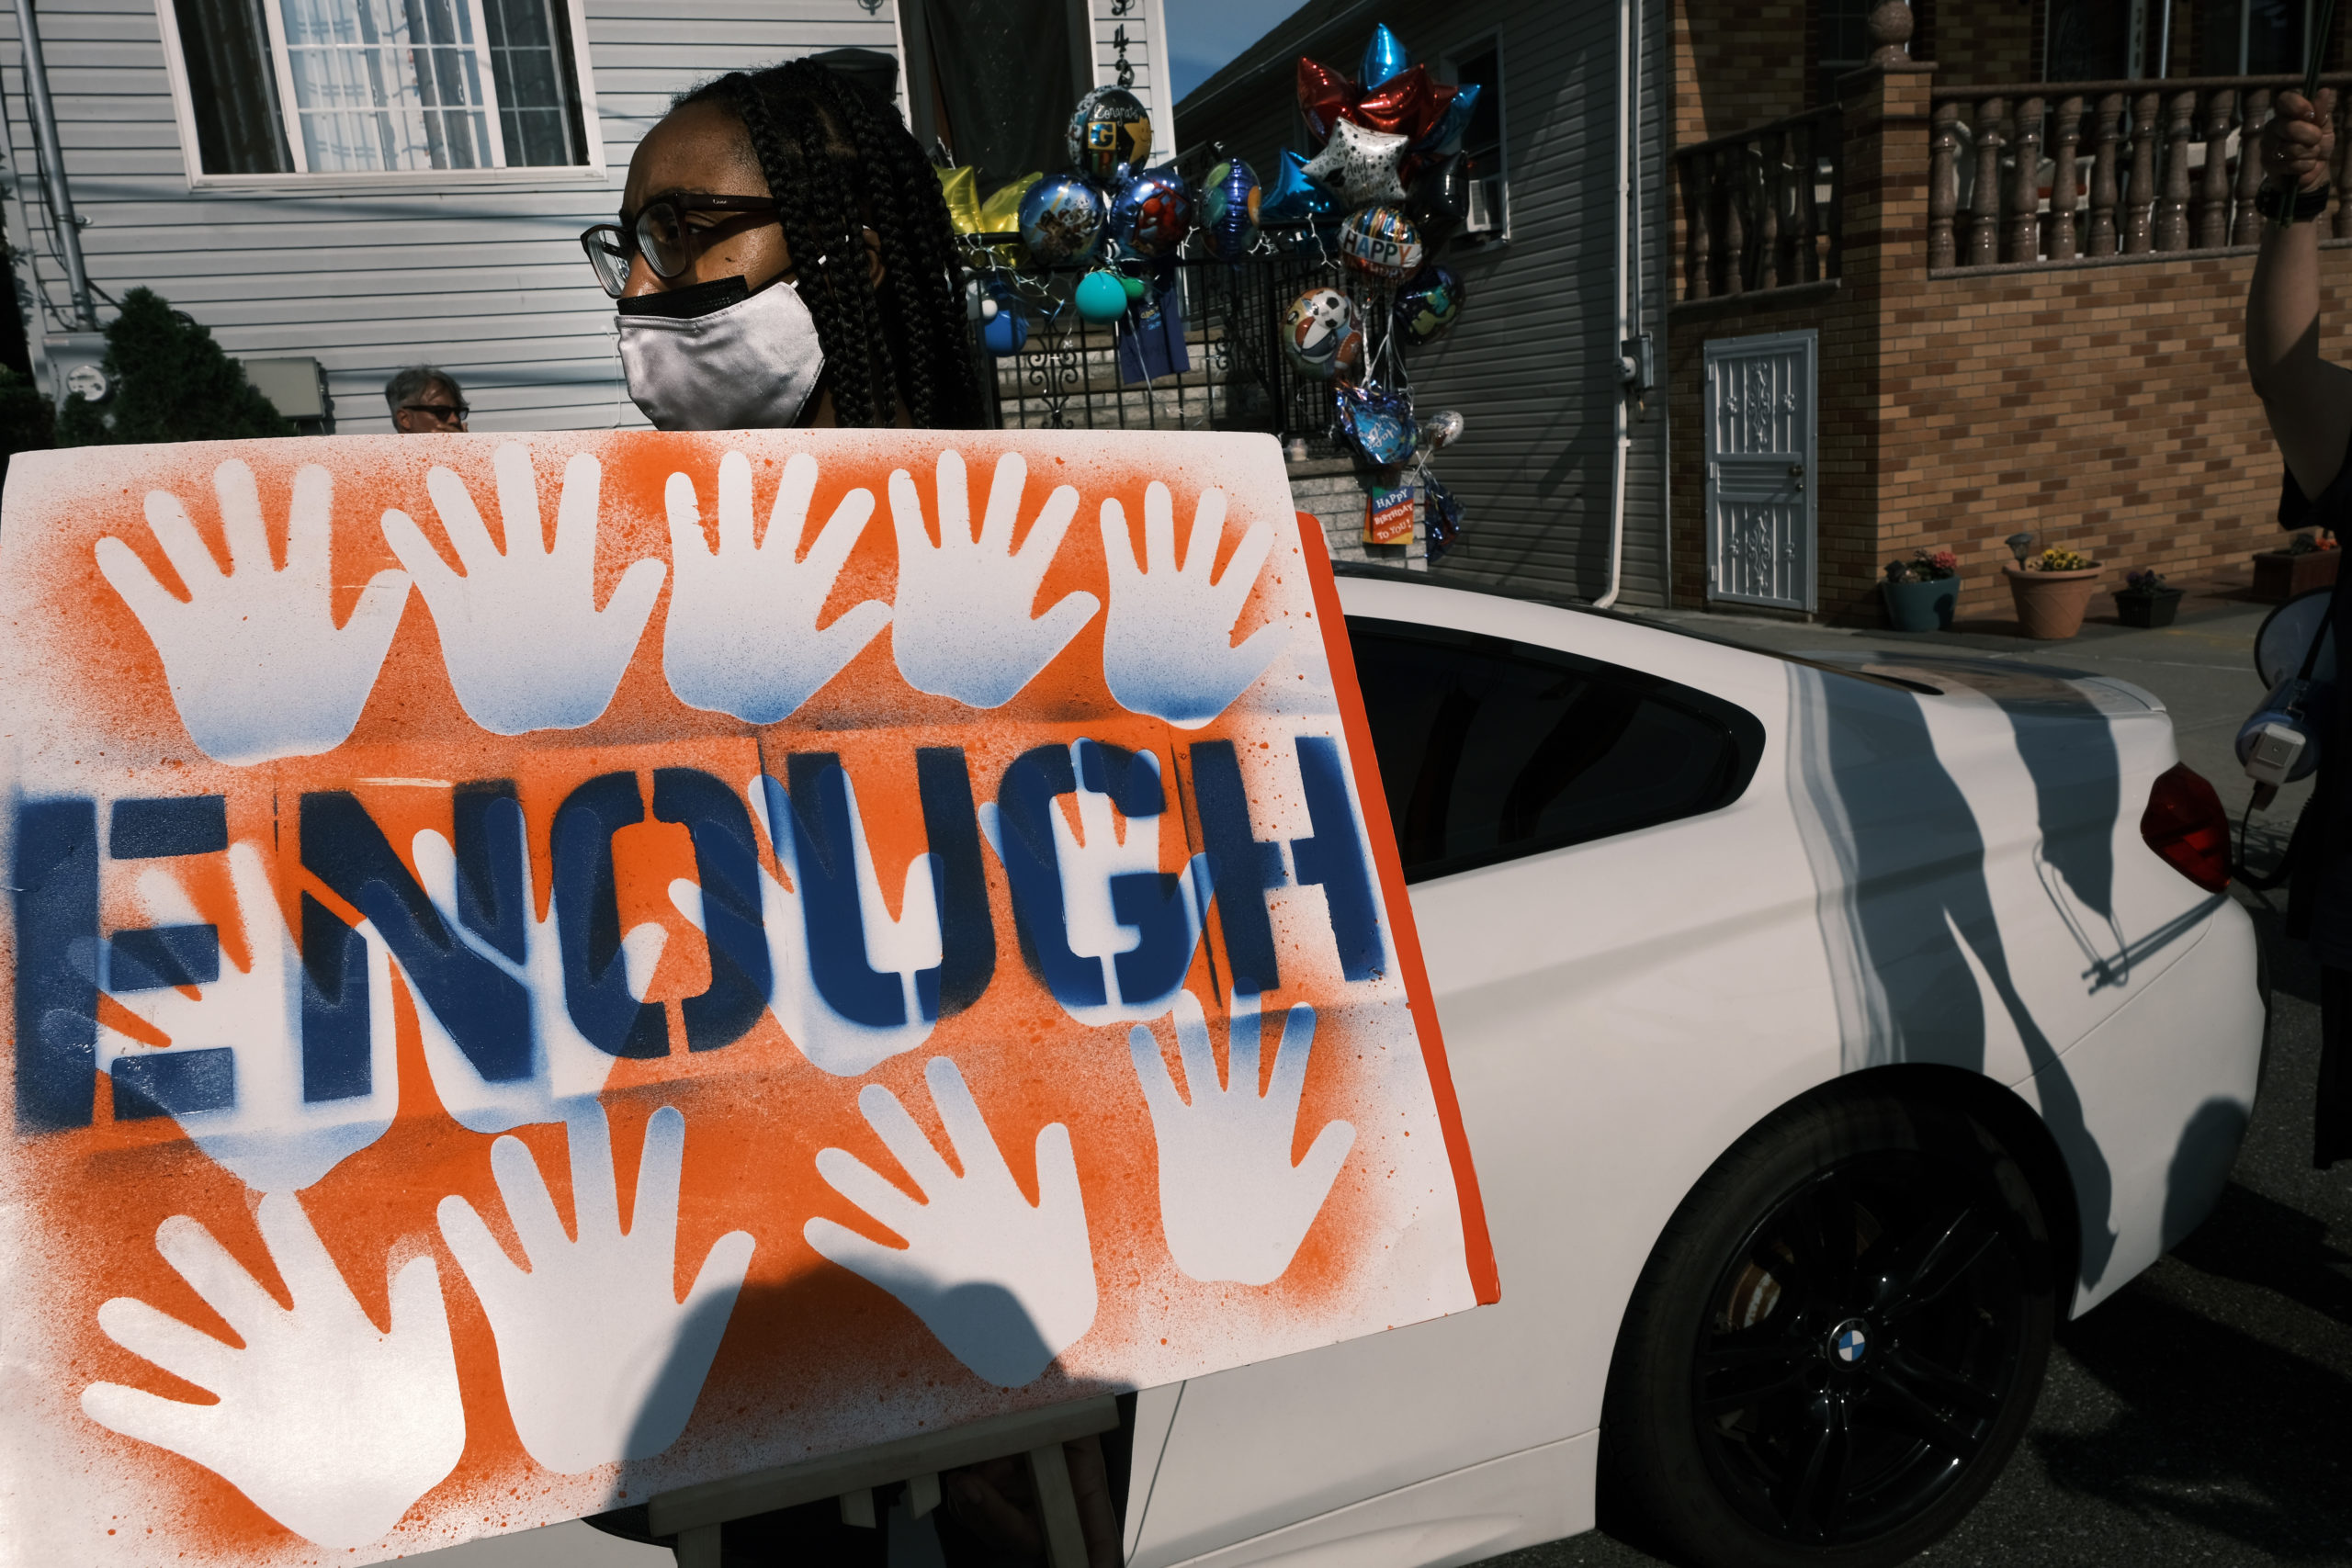 Activists, politicians and community members and others attend a peace vigil to end gun violence in front of the house where a boy was recently shot in the Rockaway section of Queens on June 09, 2021 in New York City. (Spencer Platt/Getty Images)